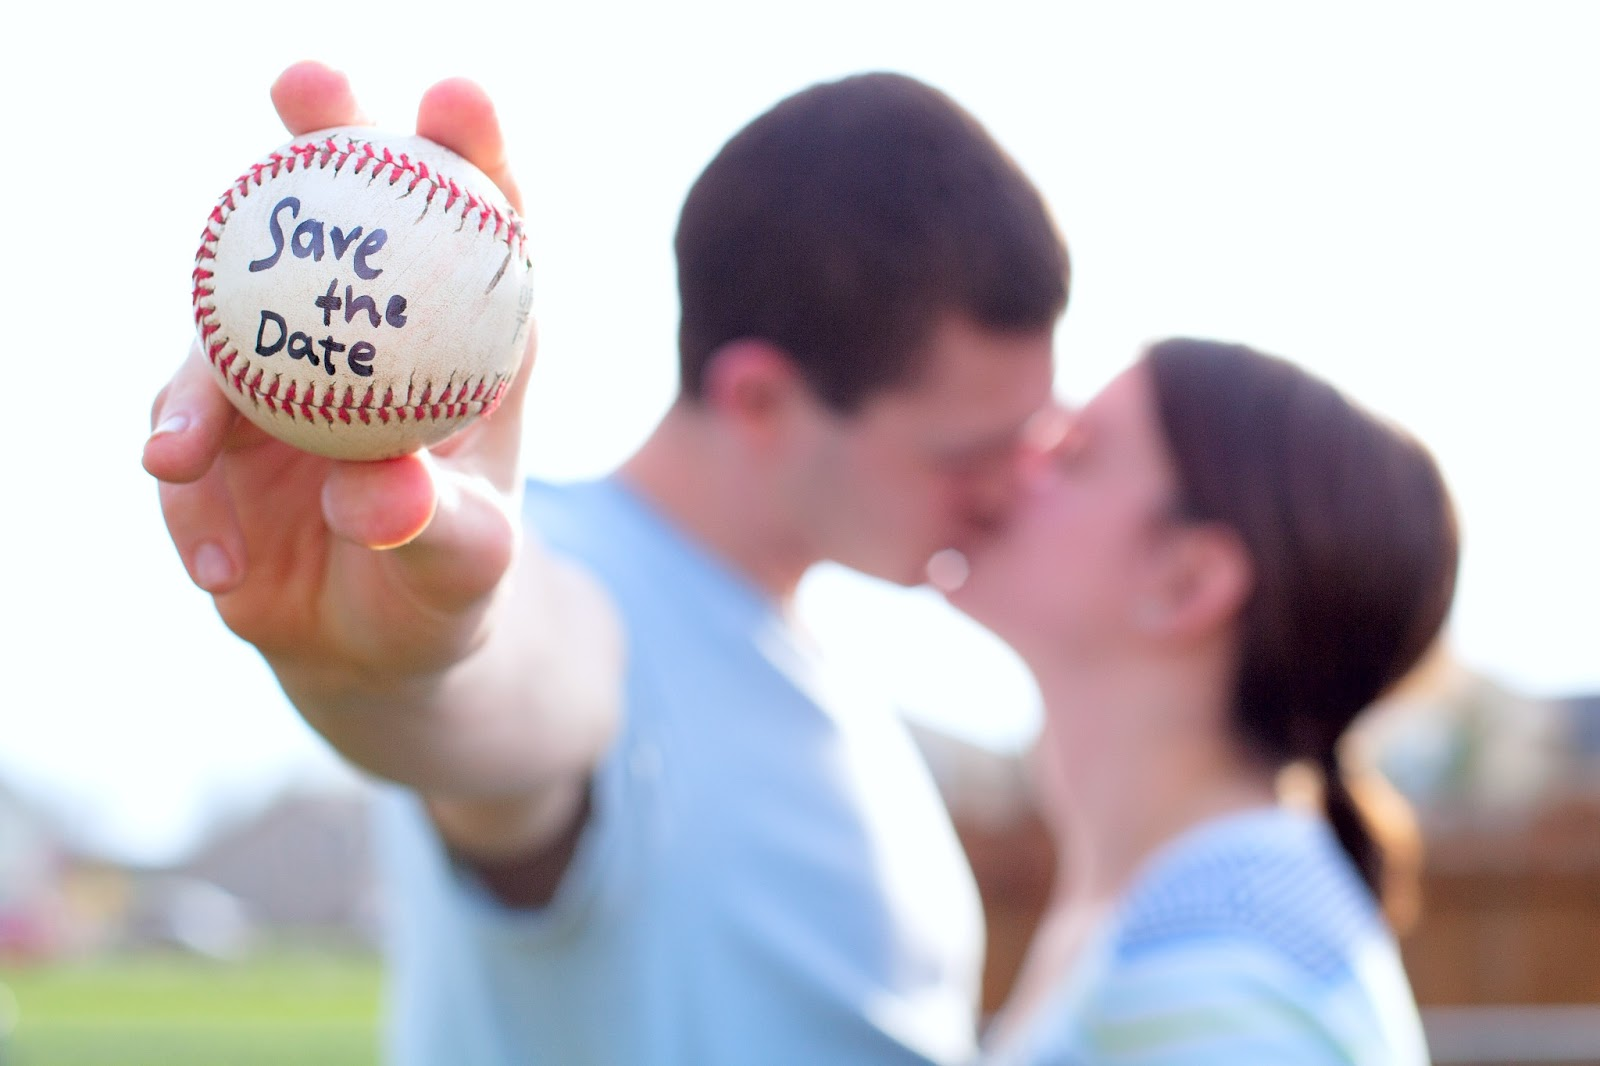 angela andrew baseball themed save the date apple wine